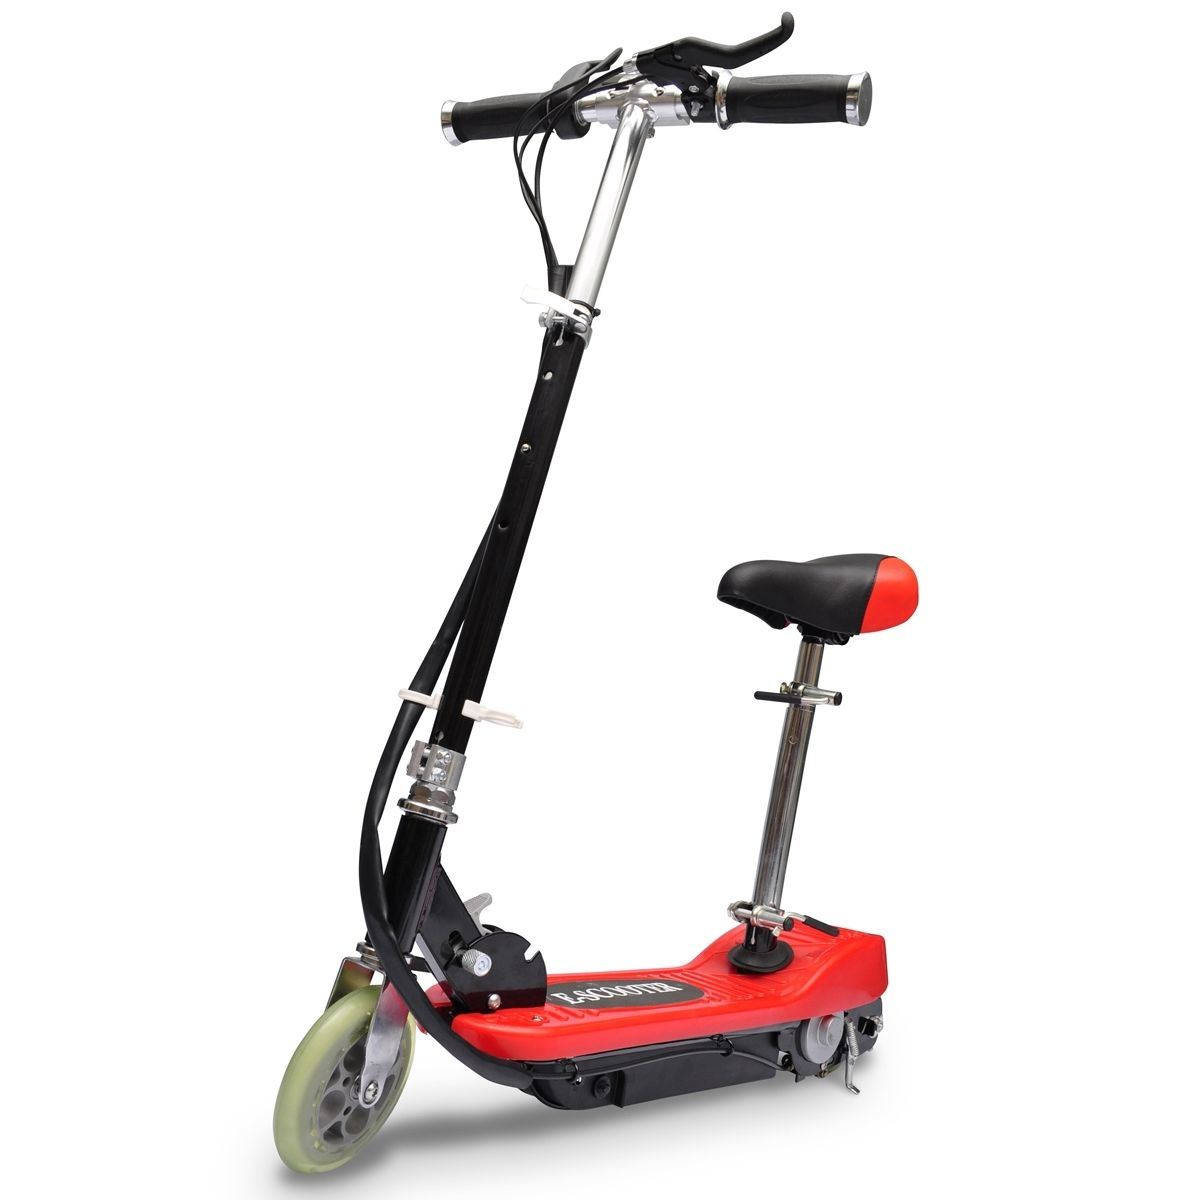 Top 5 Scooters for Ladies in India for 2017 - Girls, Teens